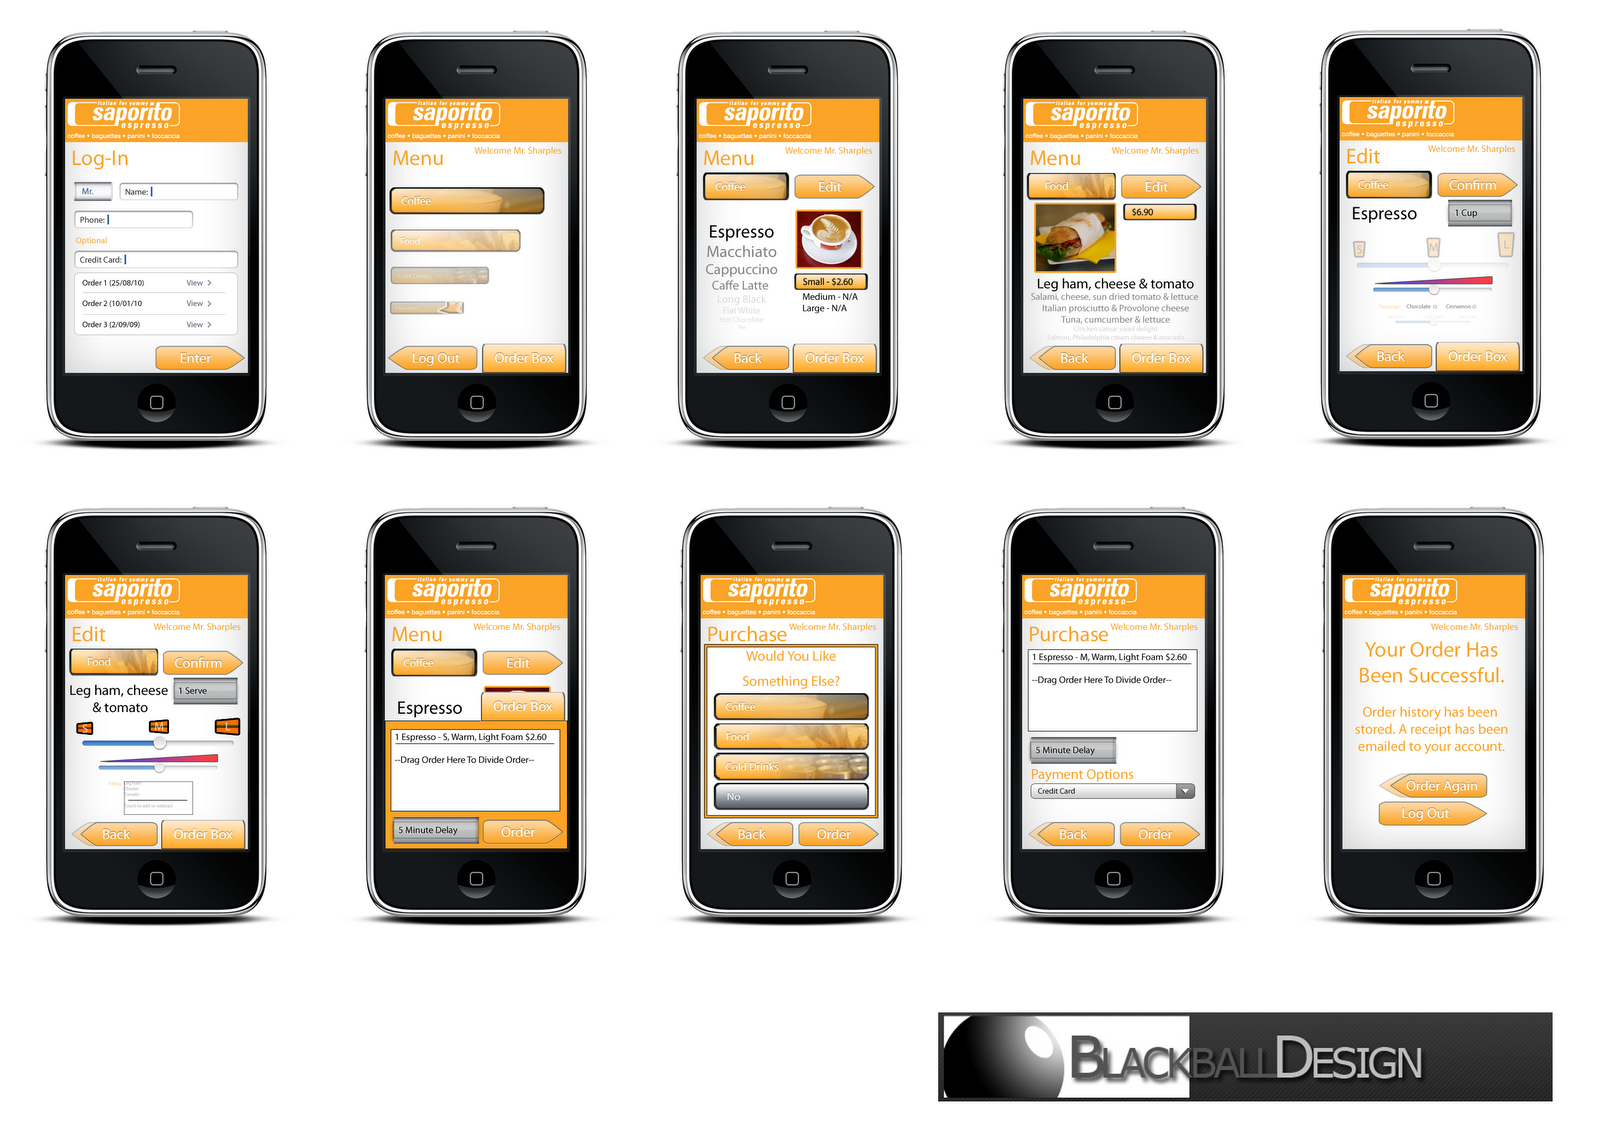 Blackball design iphone app mockups for Designing an iphone app